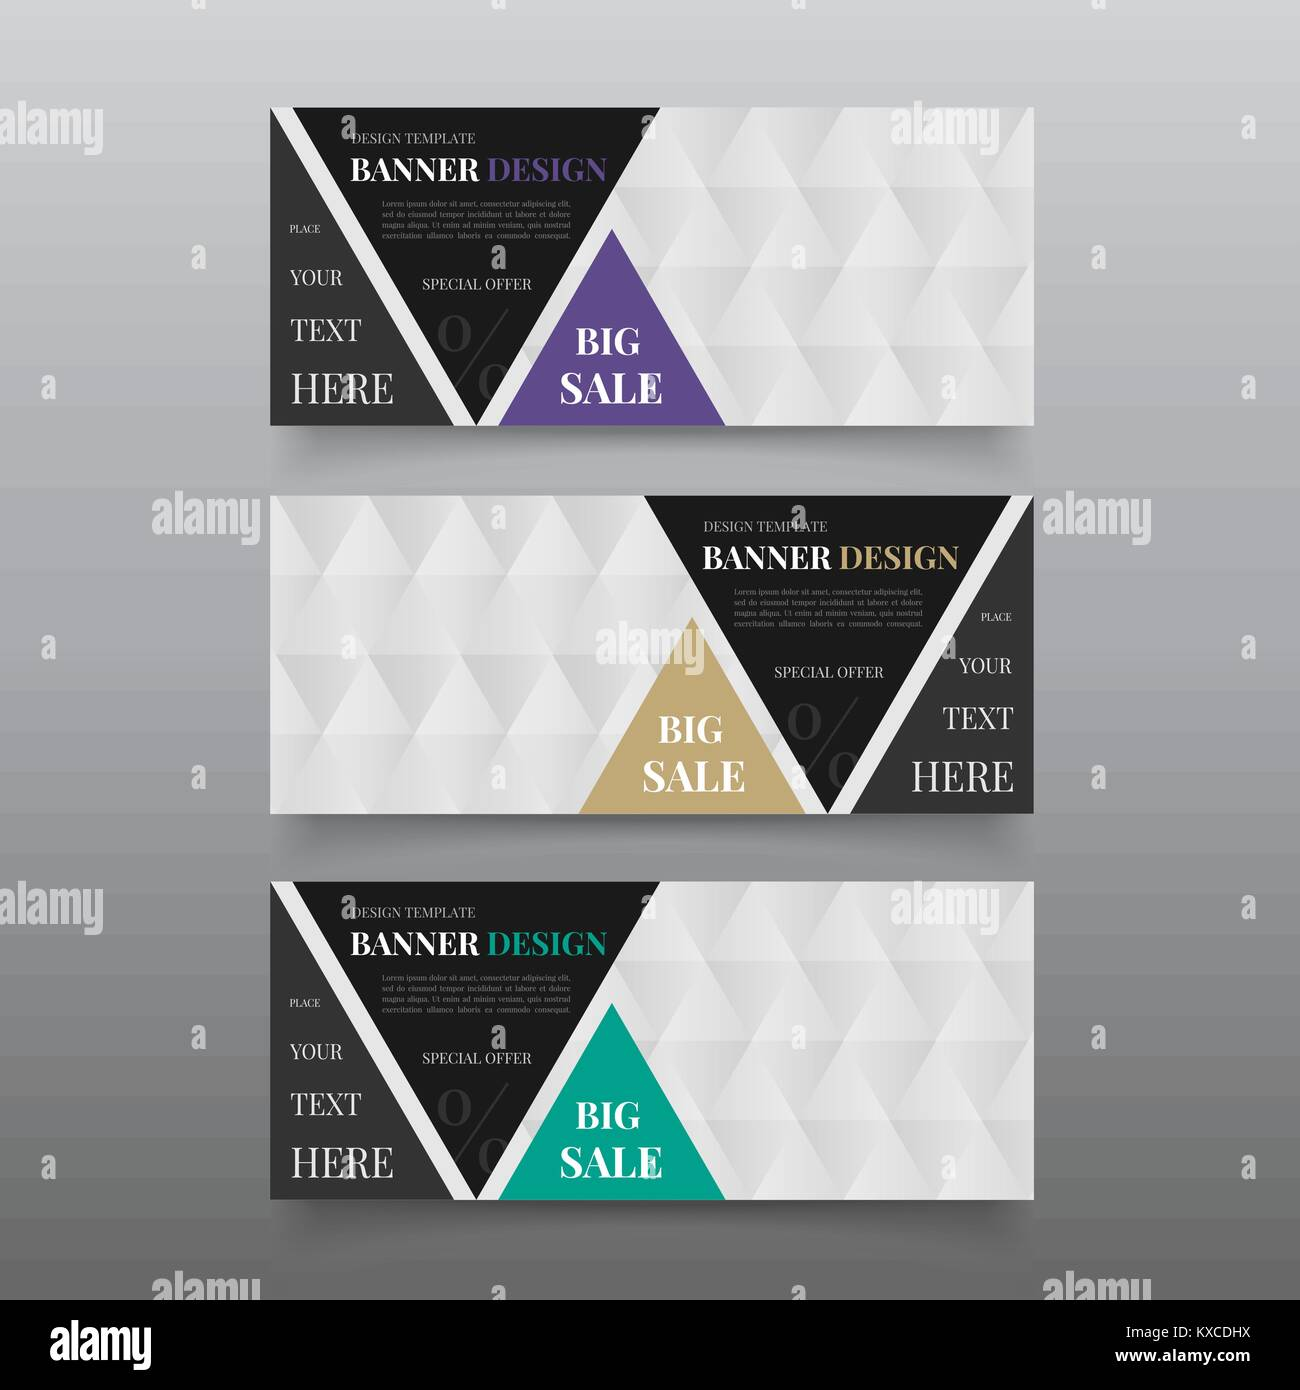 Triangle banner design templates. Web banner design vector. Website banner template with text, button. Business, Stock Vector